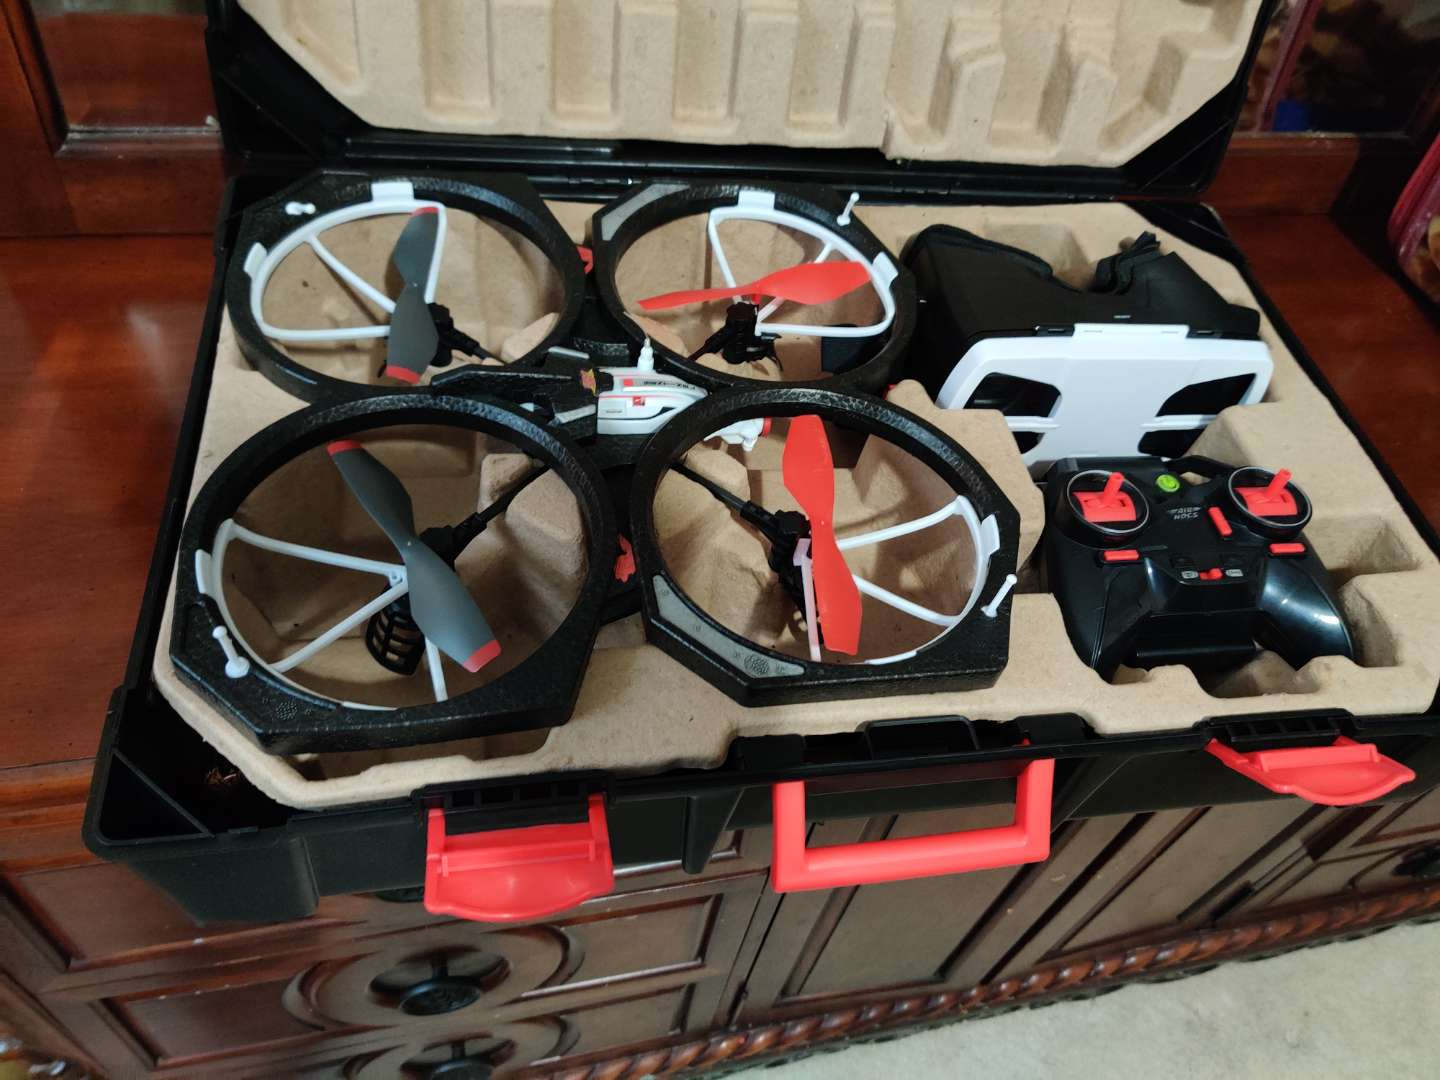 78 Air Hogs - Helix Sentinel View Video Drone in case used once